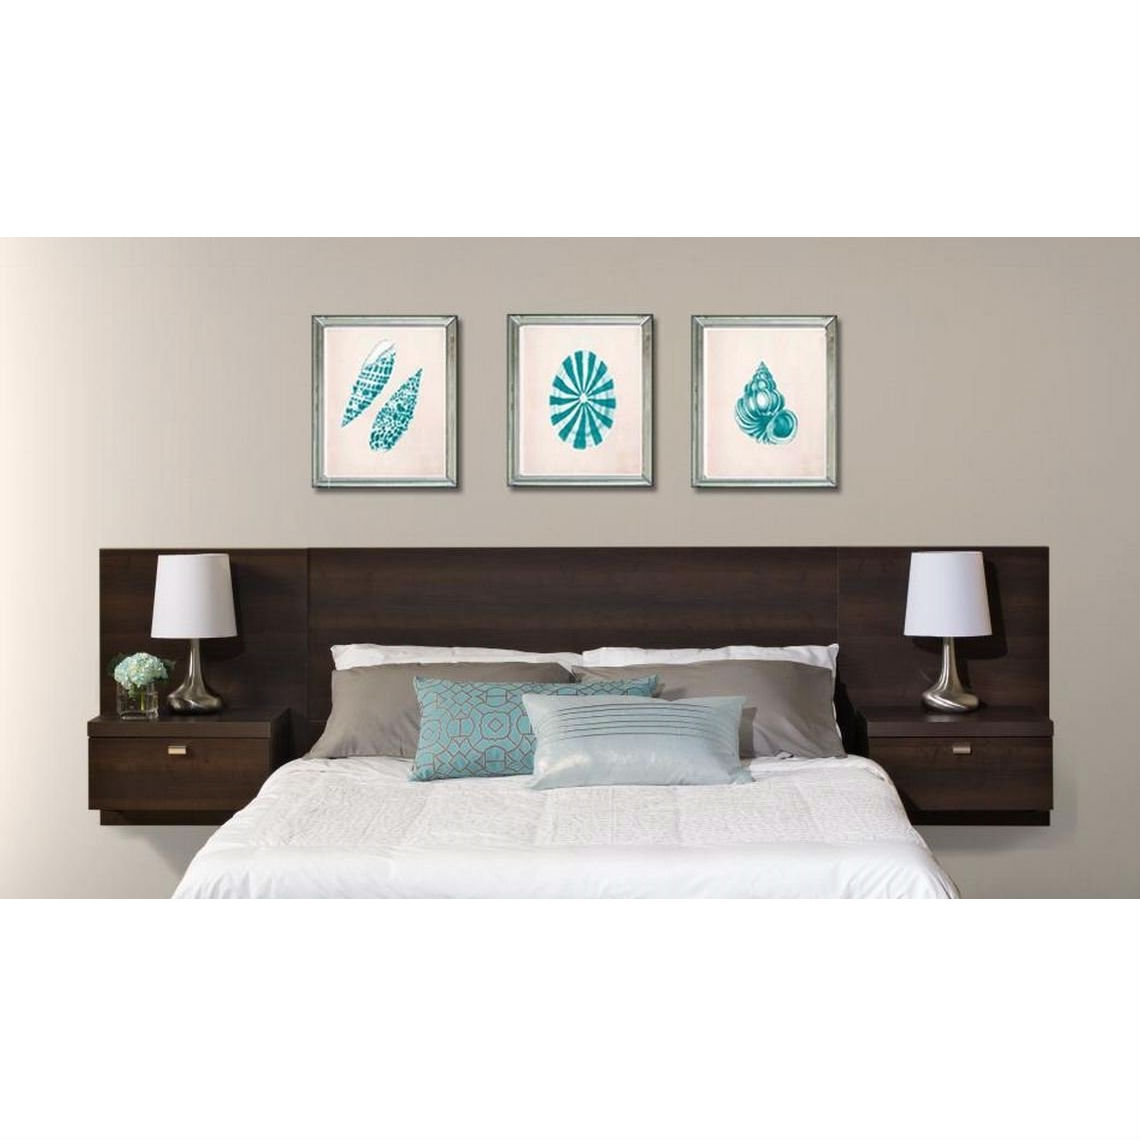 tables wall plans bedside mounted nightstands headboard for floating nightstand small with spaces